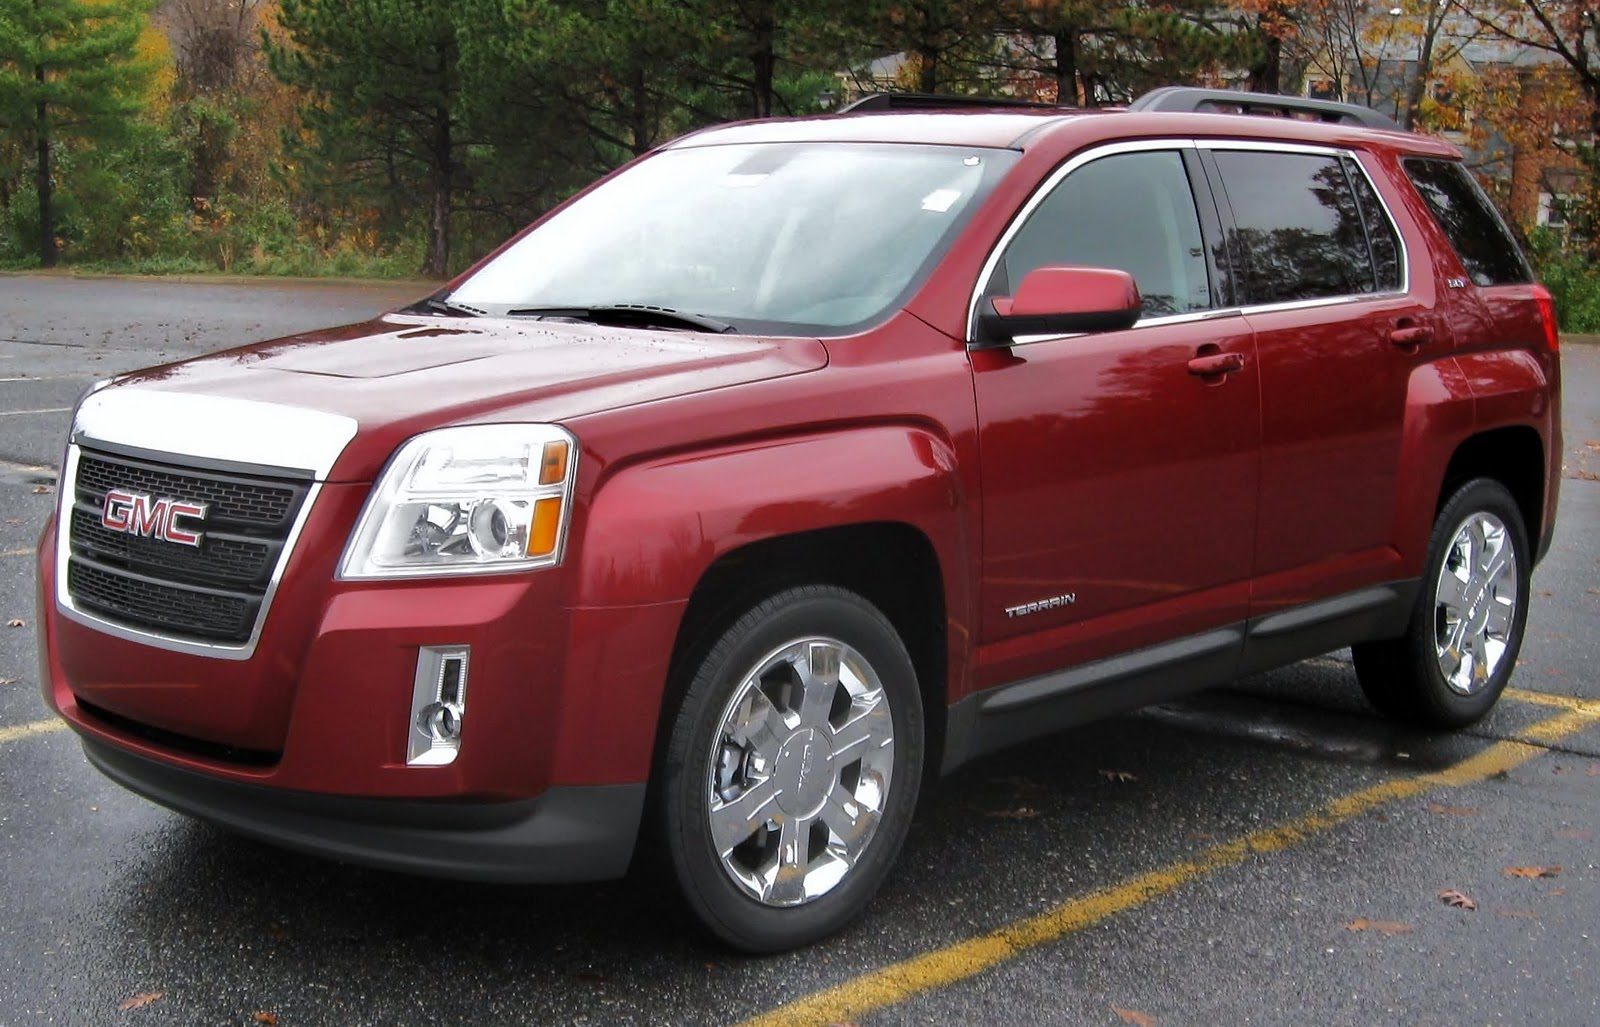 gmc terrain 2012 new car price specification review images. Black Bedroom Furniture Sets. Home Design Ideas